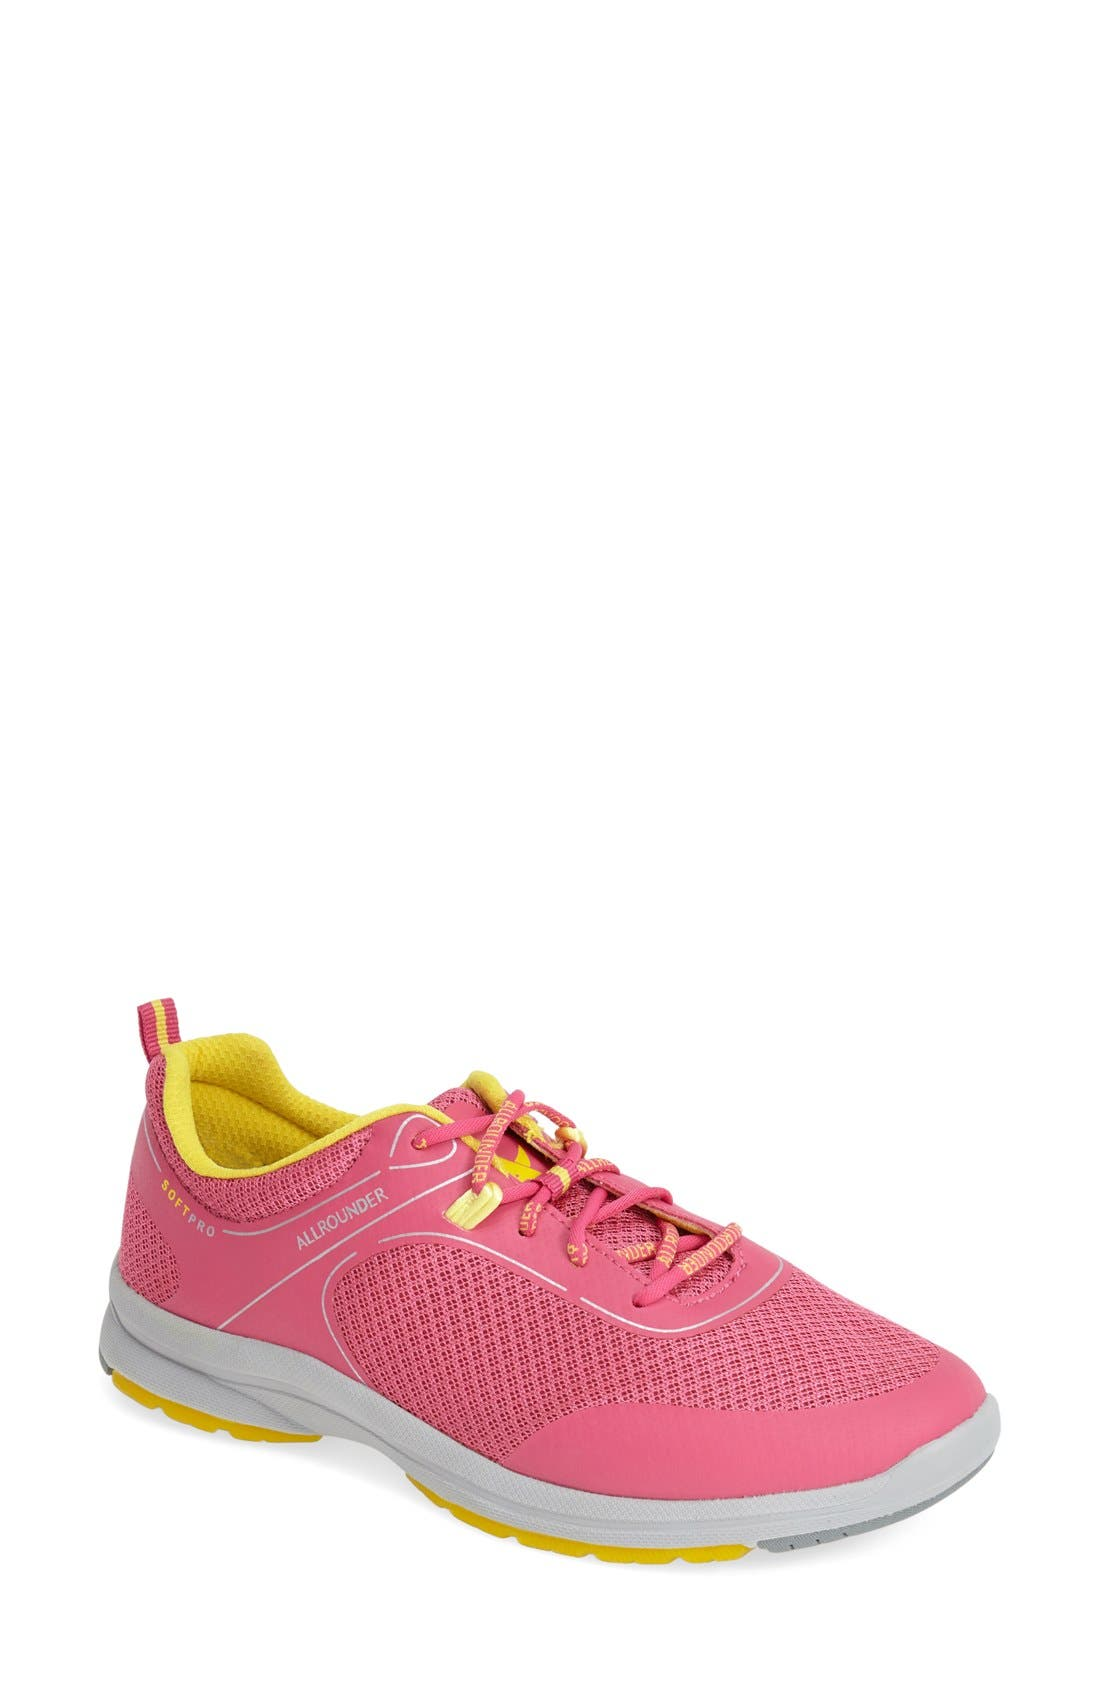 Alternate Image 1 Selected - Allrounder by Mephisto 'Dakona' Sneaker (Women)